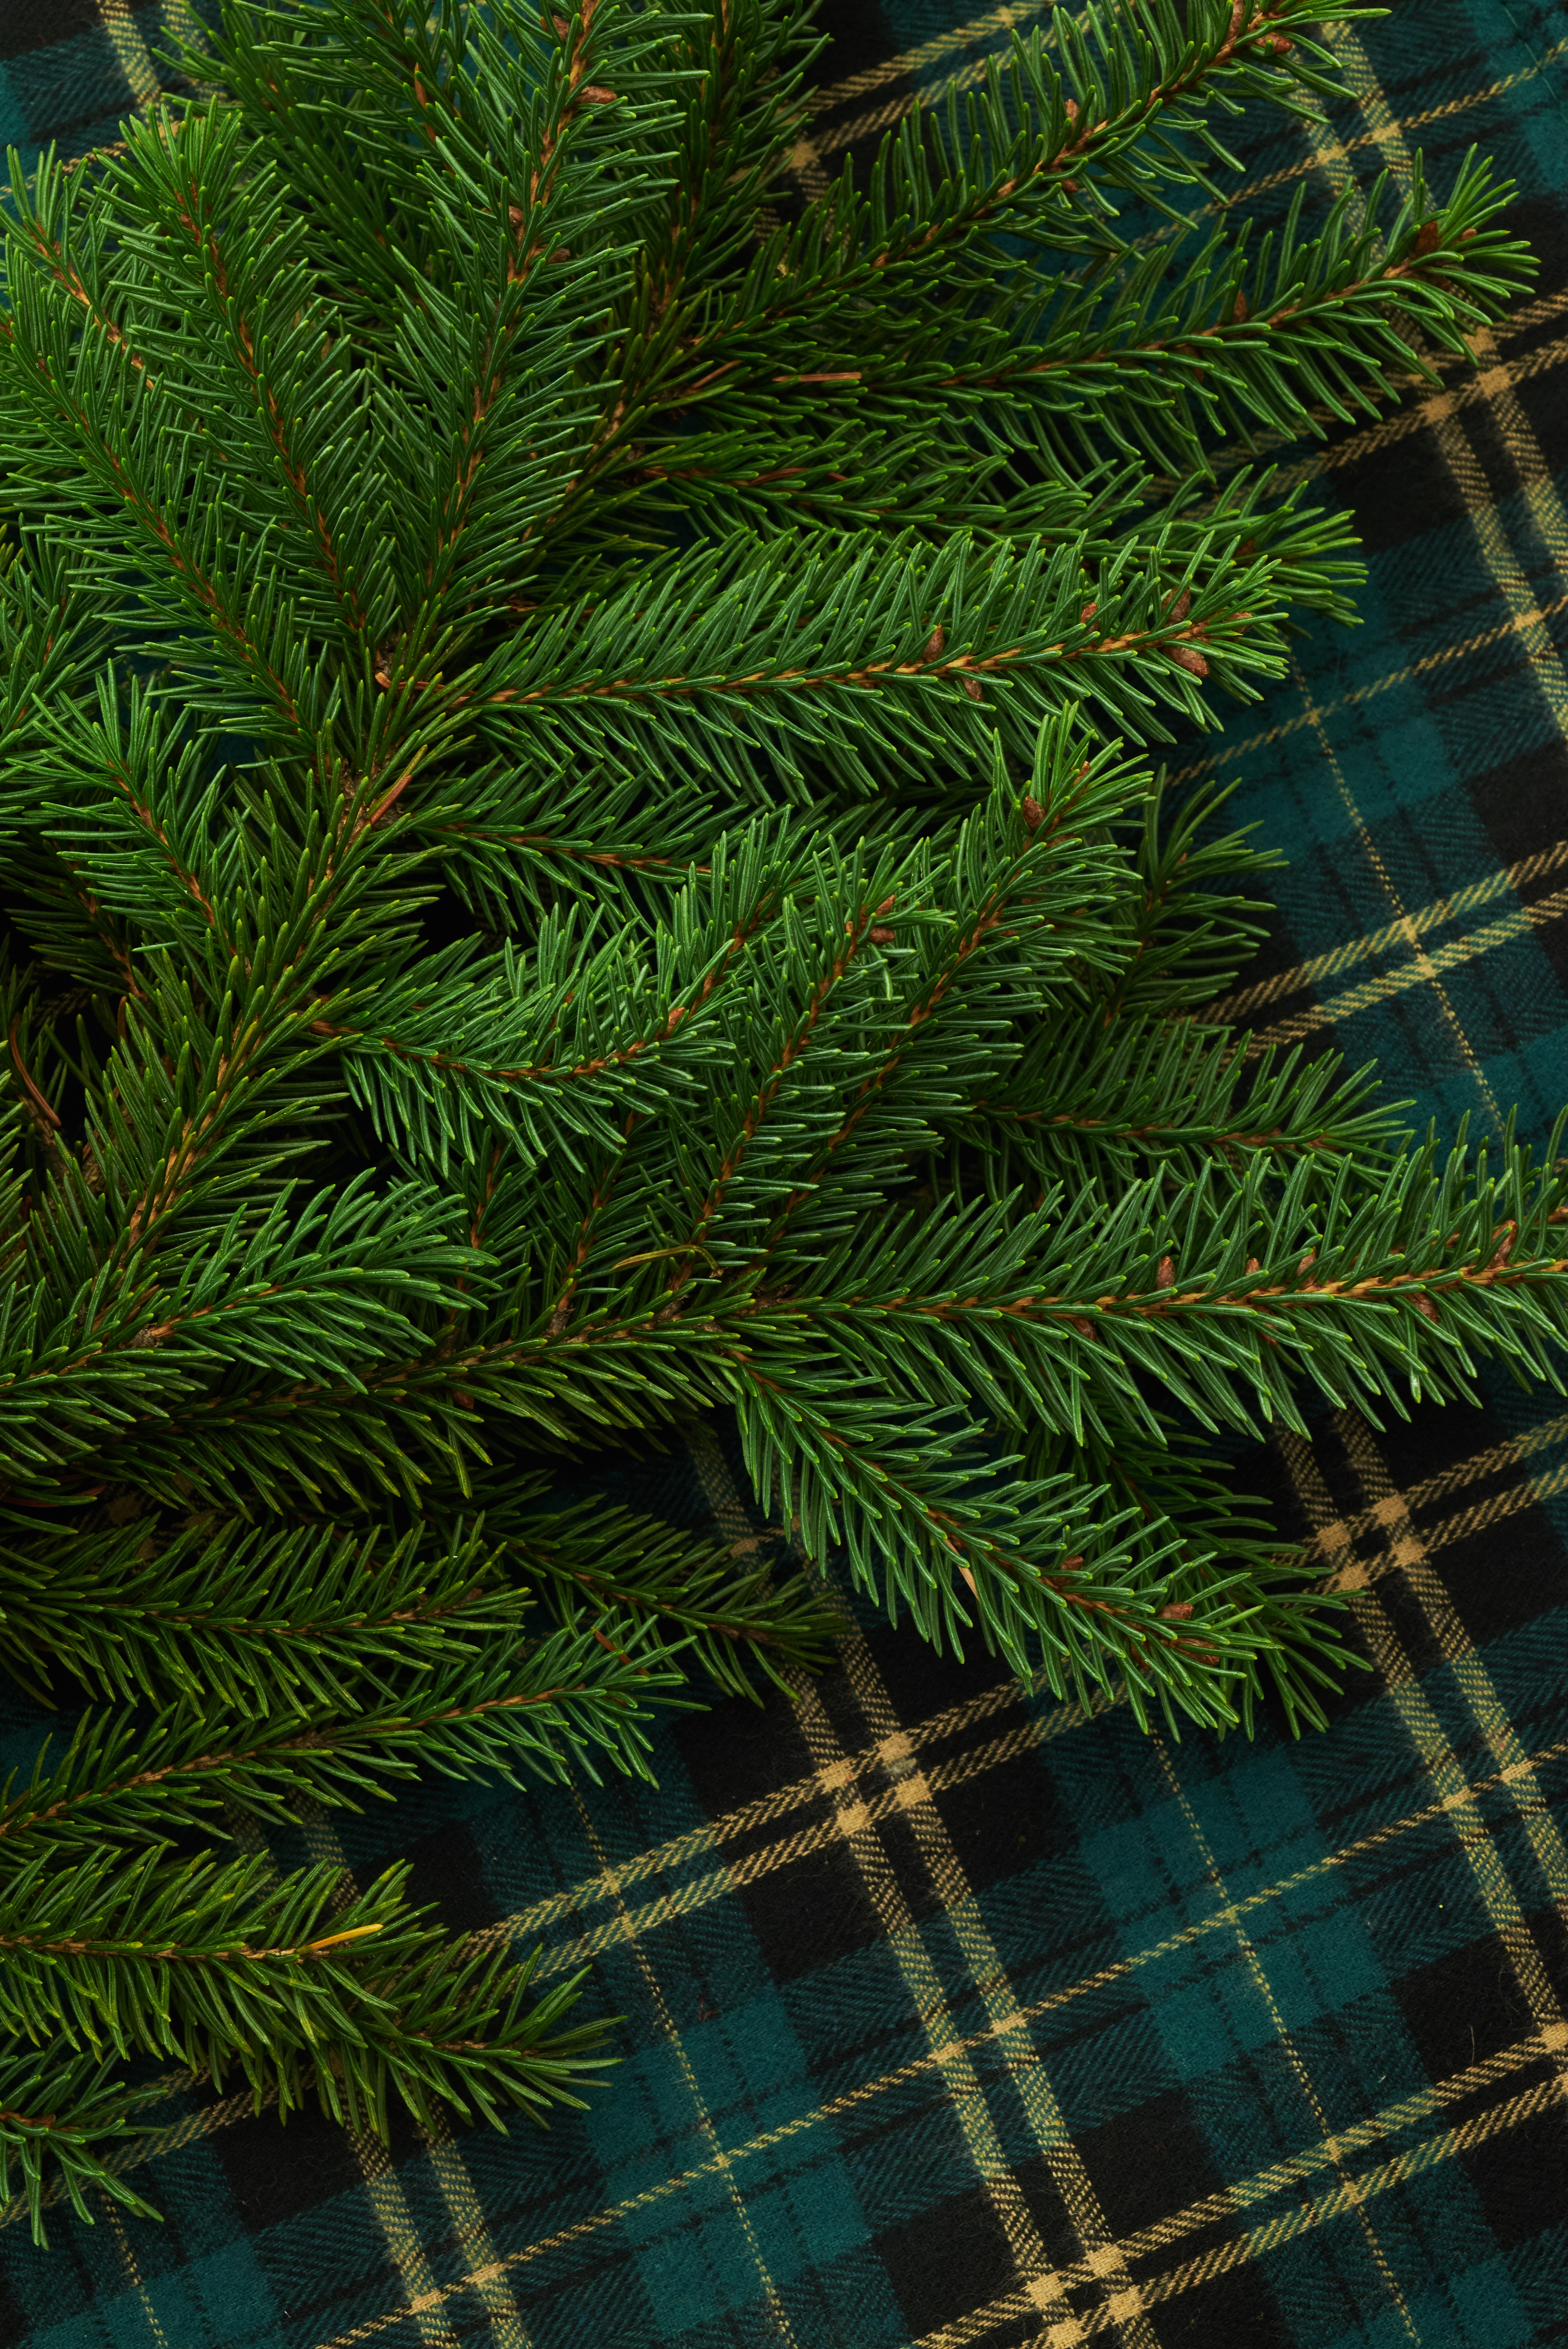 67765 Screensavers and Wallpapers Pine for phone. Download Pine, Miscellanea, Miscellaneous, Branch, Needles pictures for free